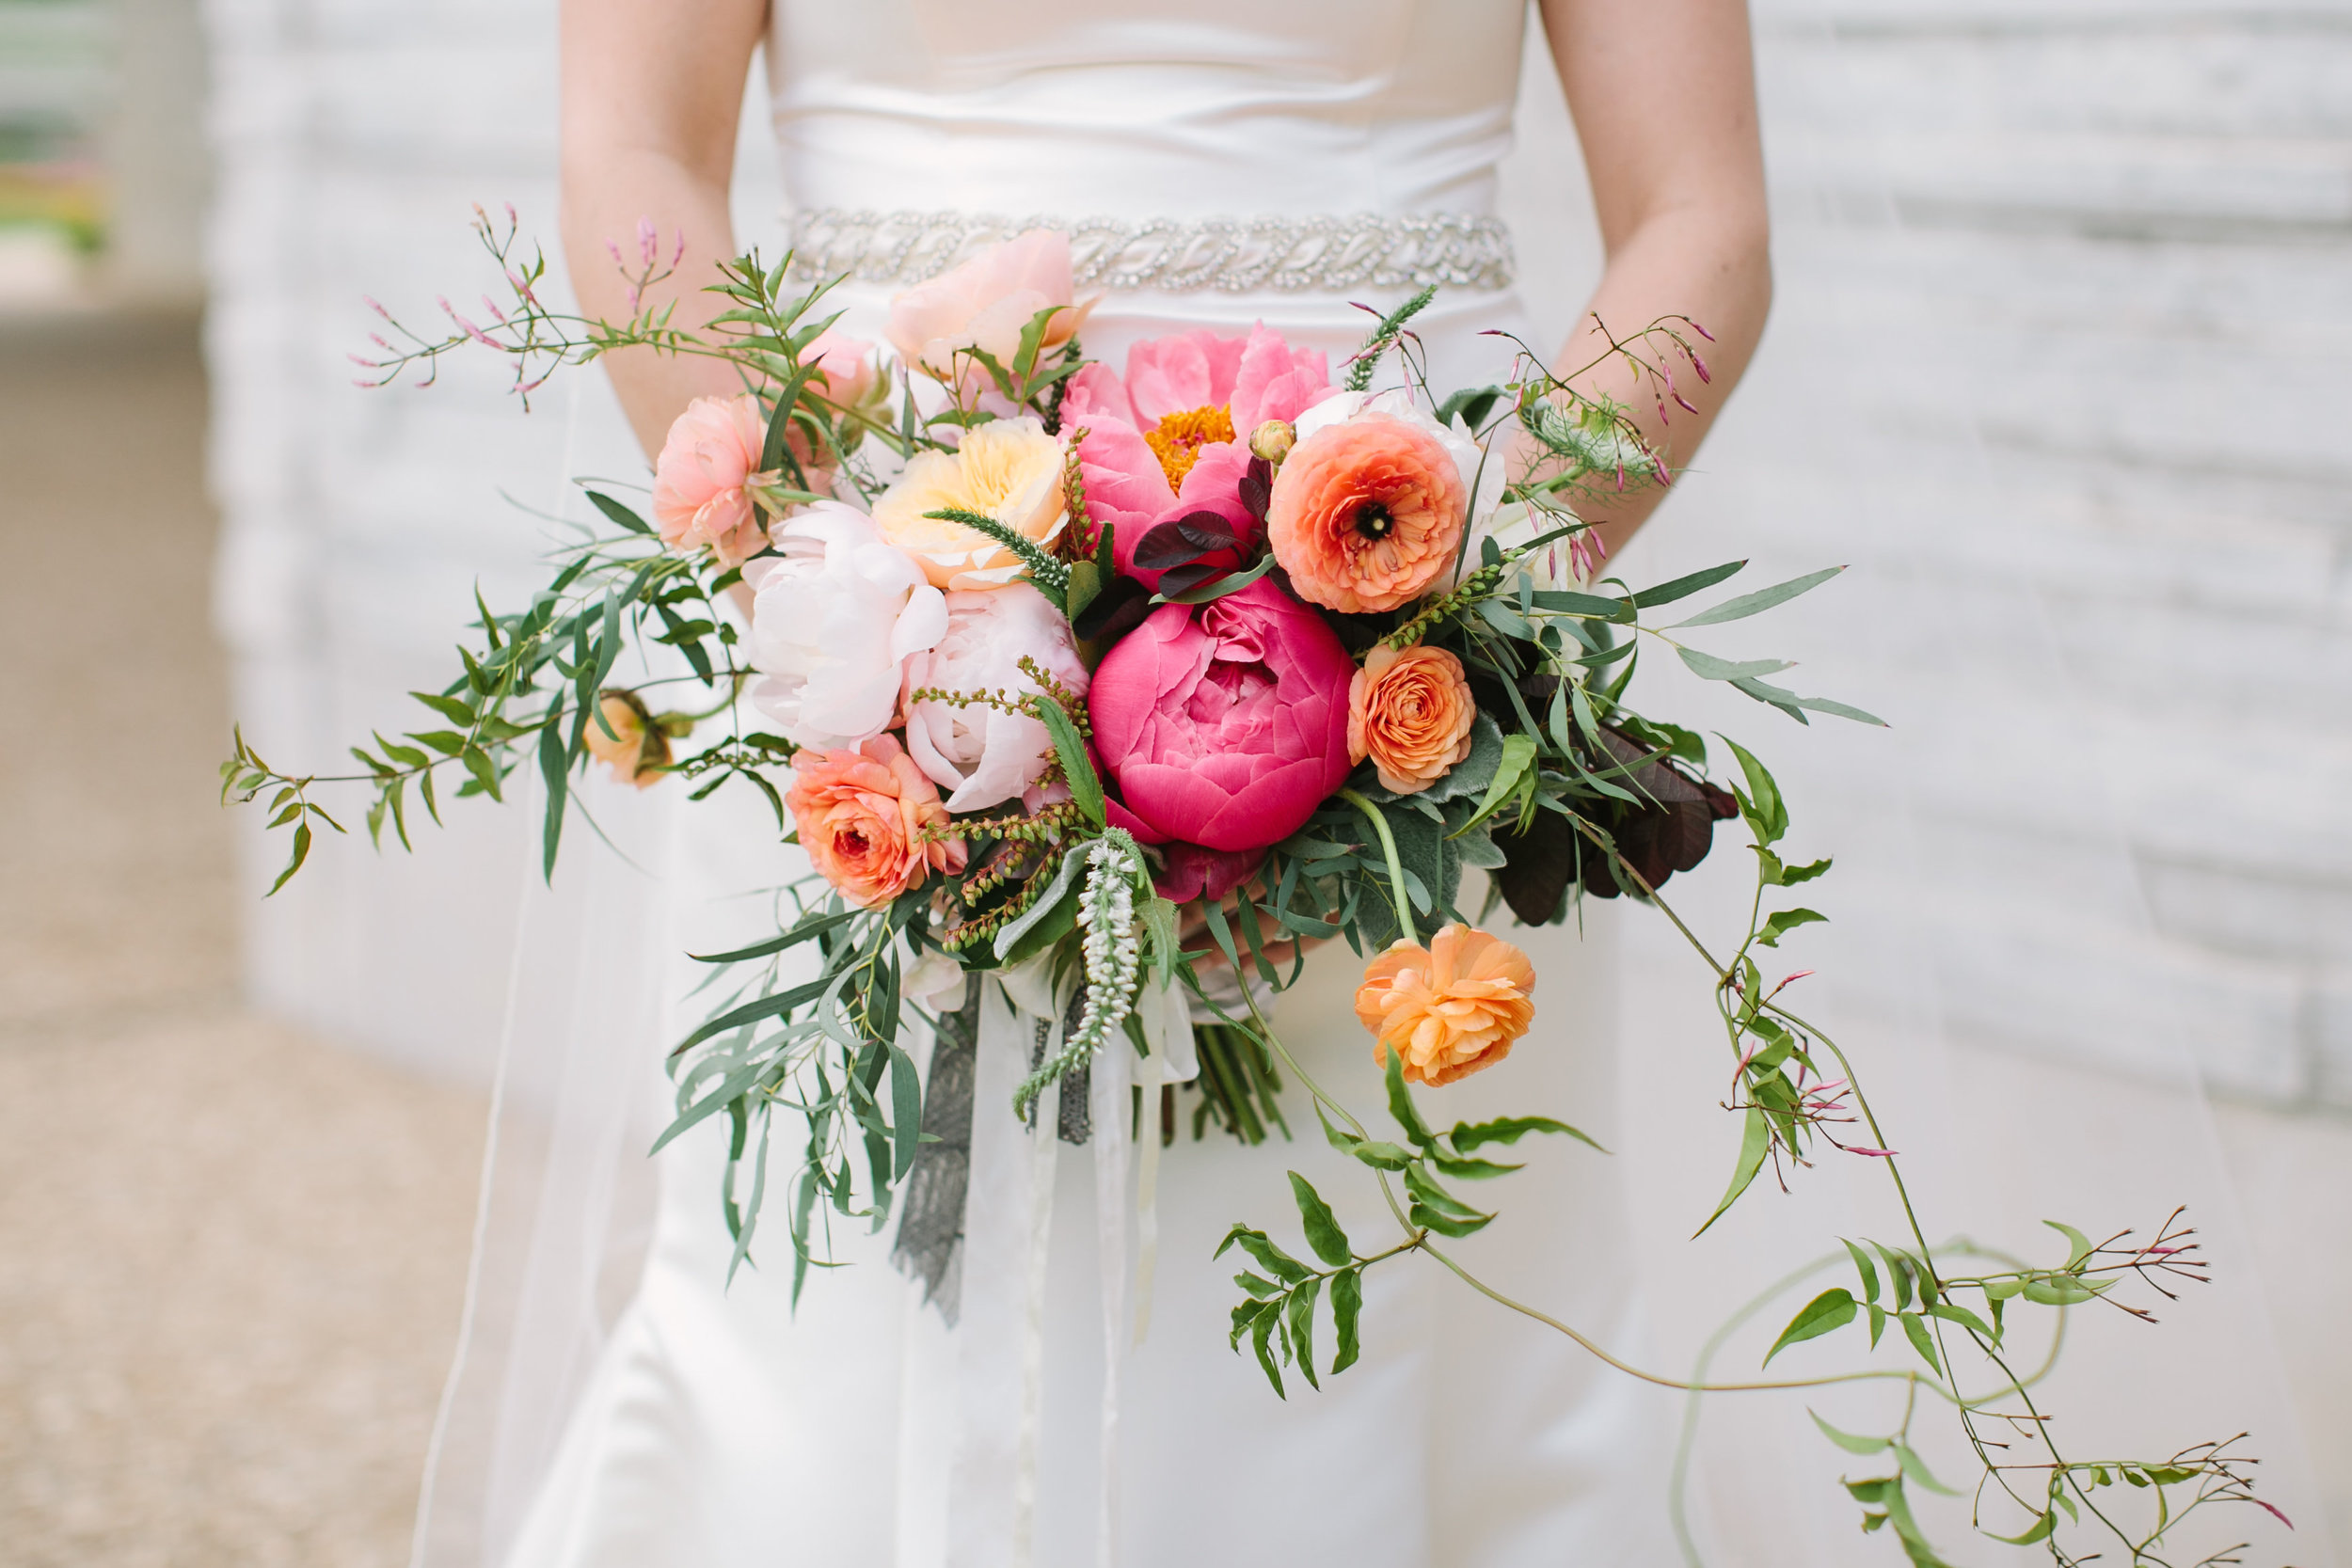 Christi's bouquet included:  Flowering jasmine vine, lambs ear, feather eucalyptus, coral charm and pink peonies, peach ranunculus, lysmachia, pieris japonica buds, juliet david austin garden roses, and smokebush.